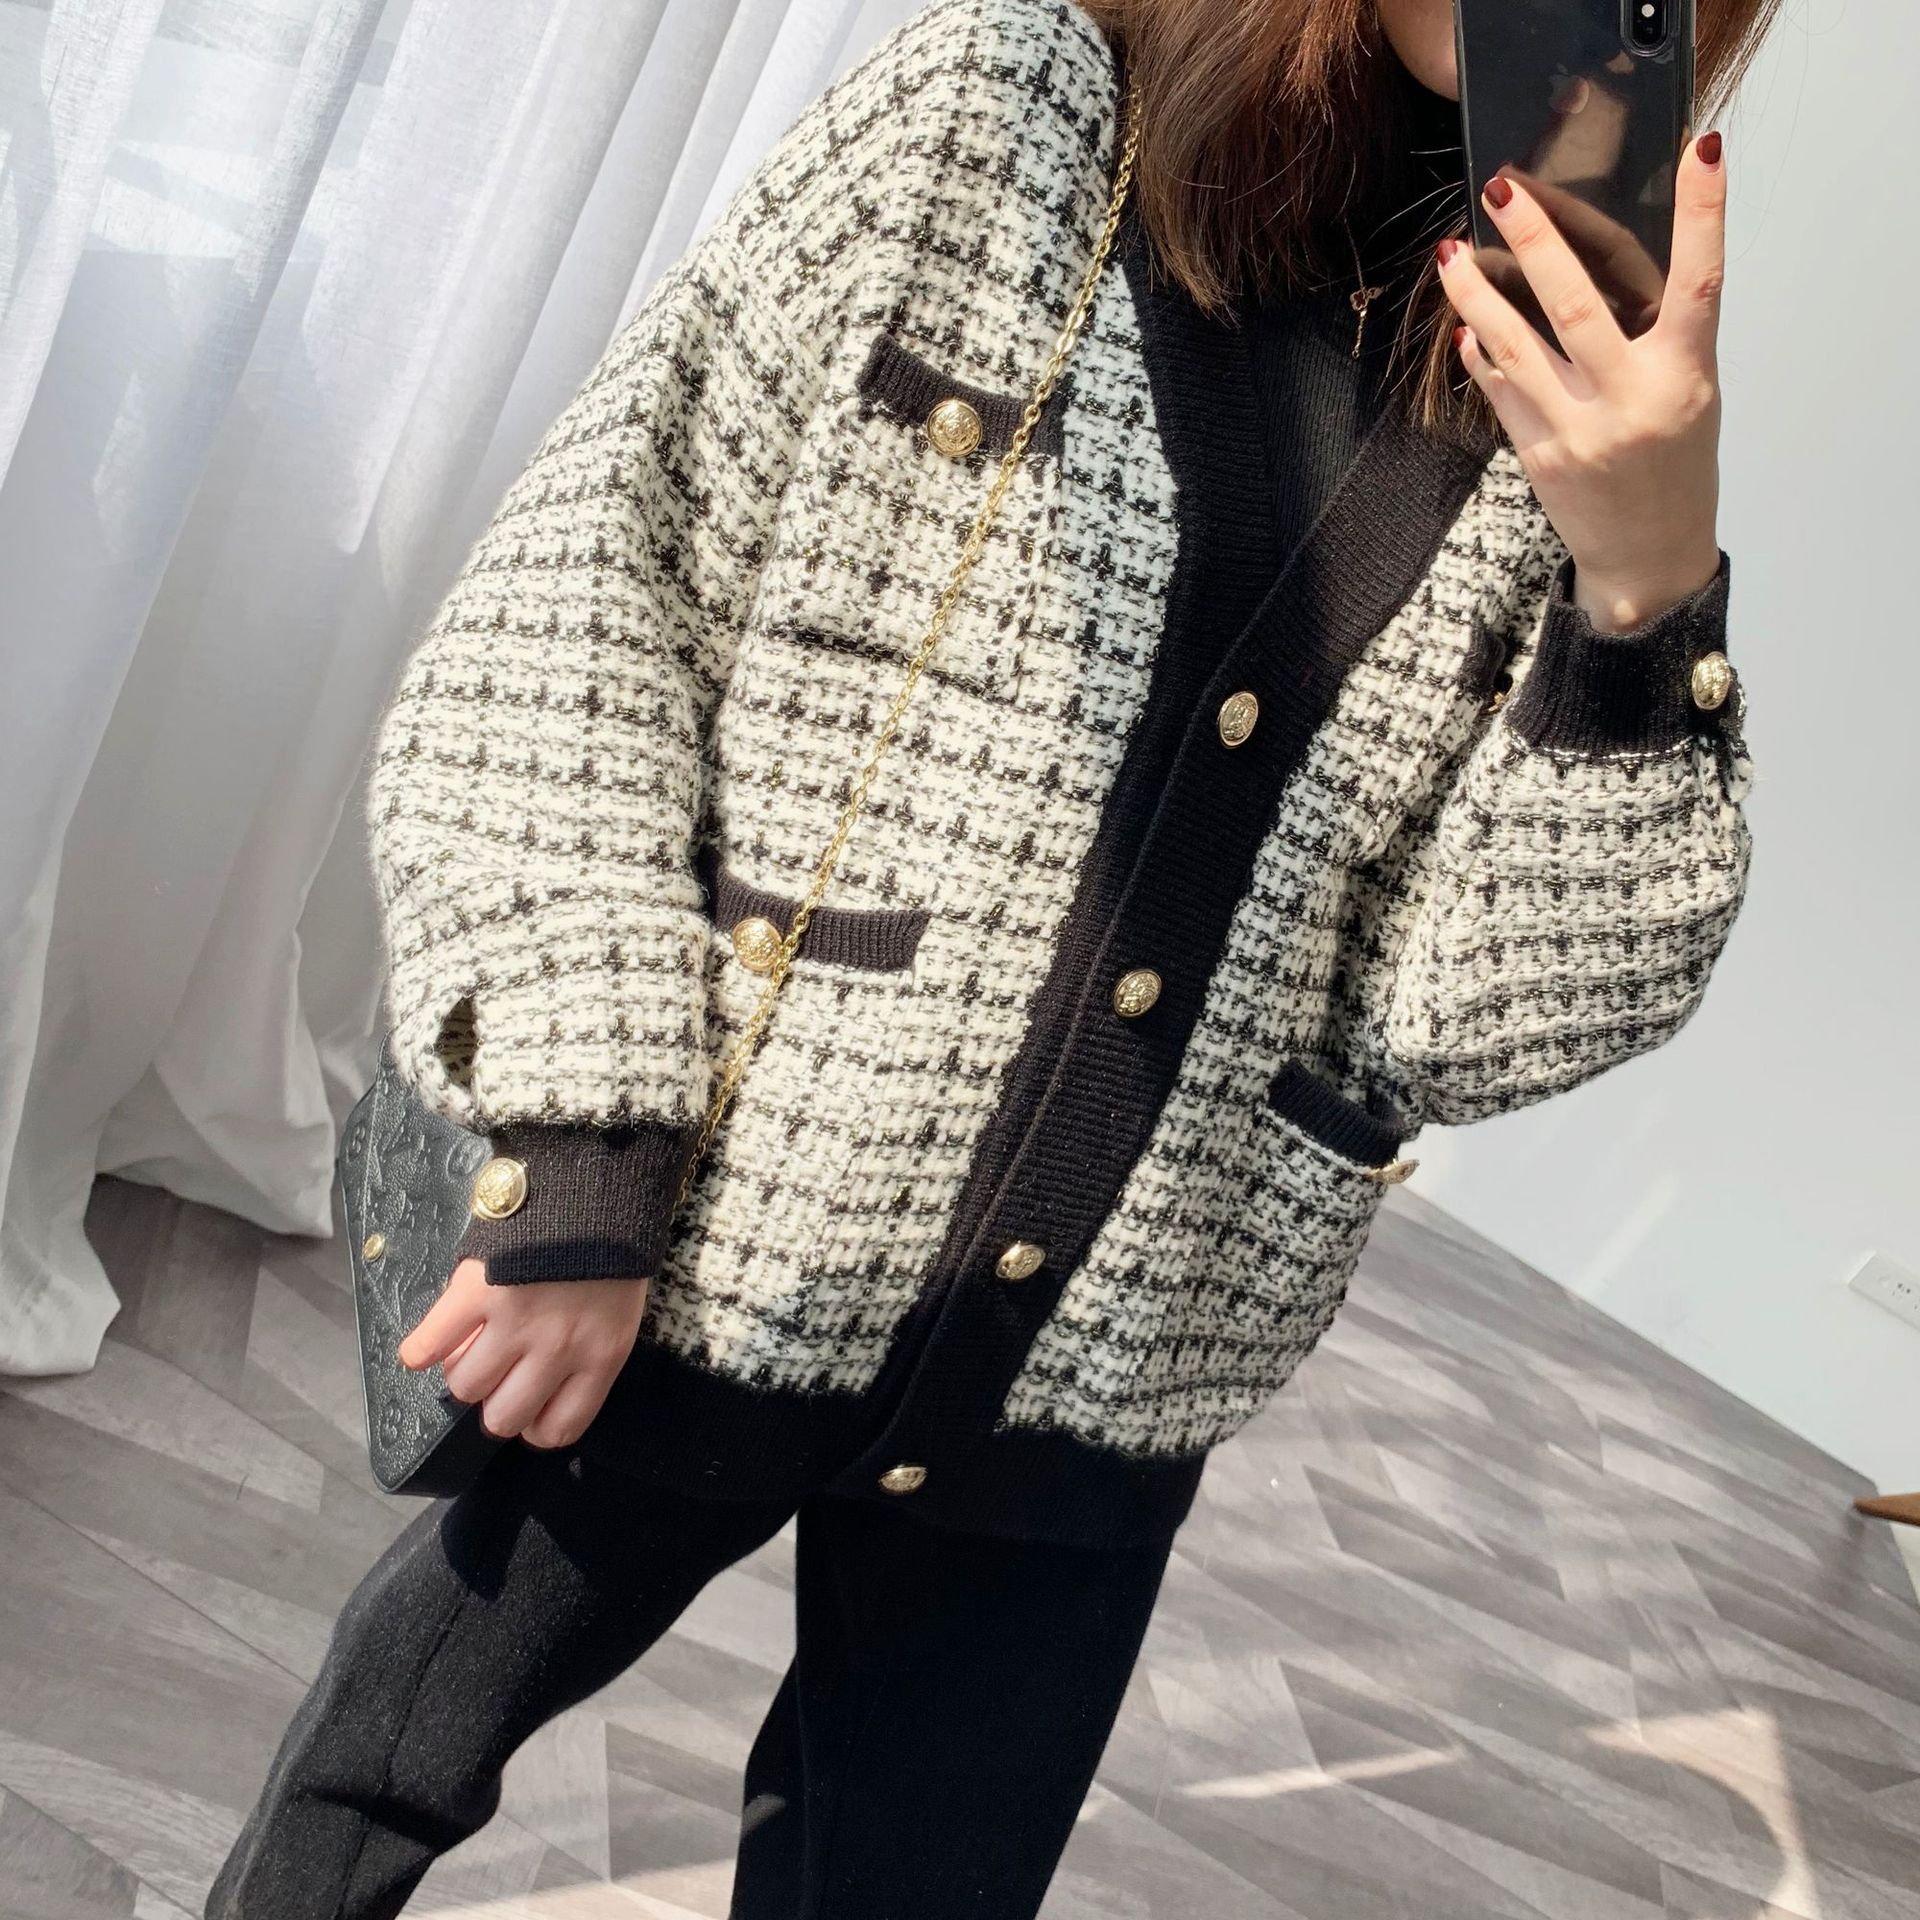 Elegant Plaid Knitted Cardigan Women Single Breasted Sweater Cardigan 2019 Autumn Winter Oversized Cardigan Jumper LT985S50(China)